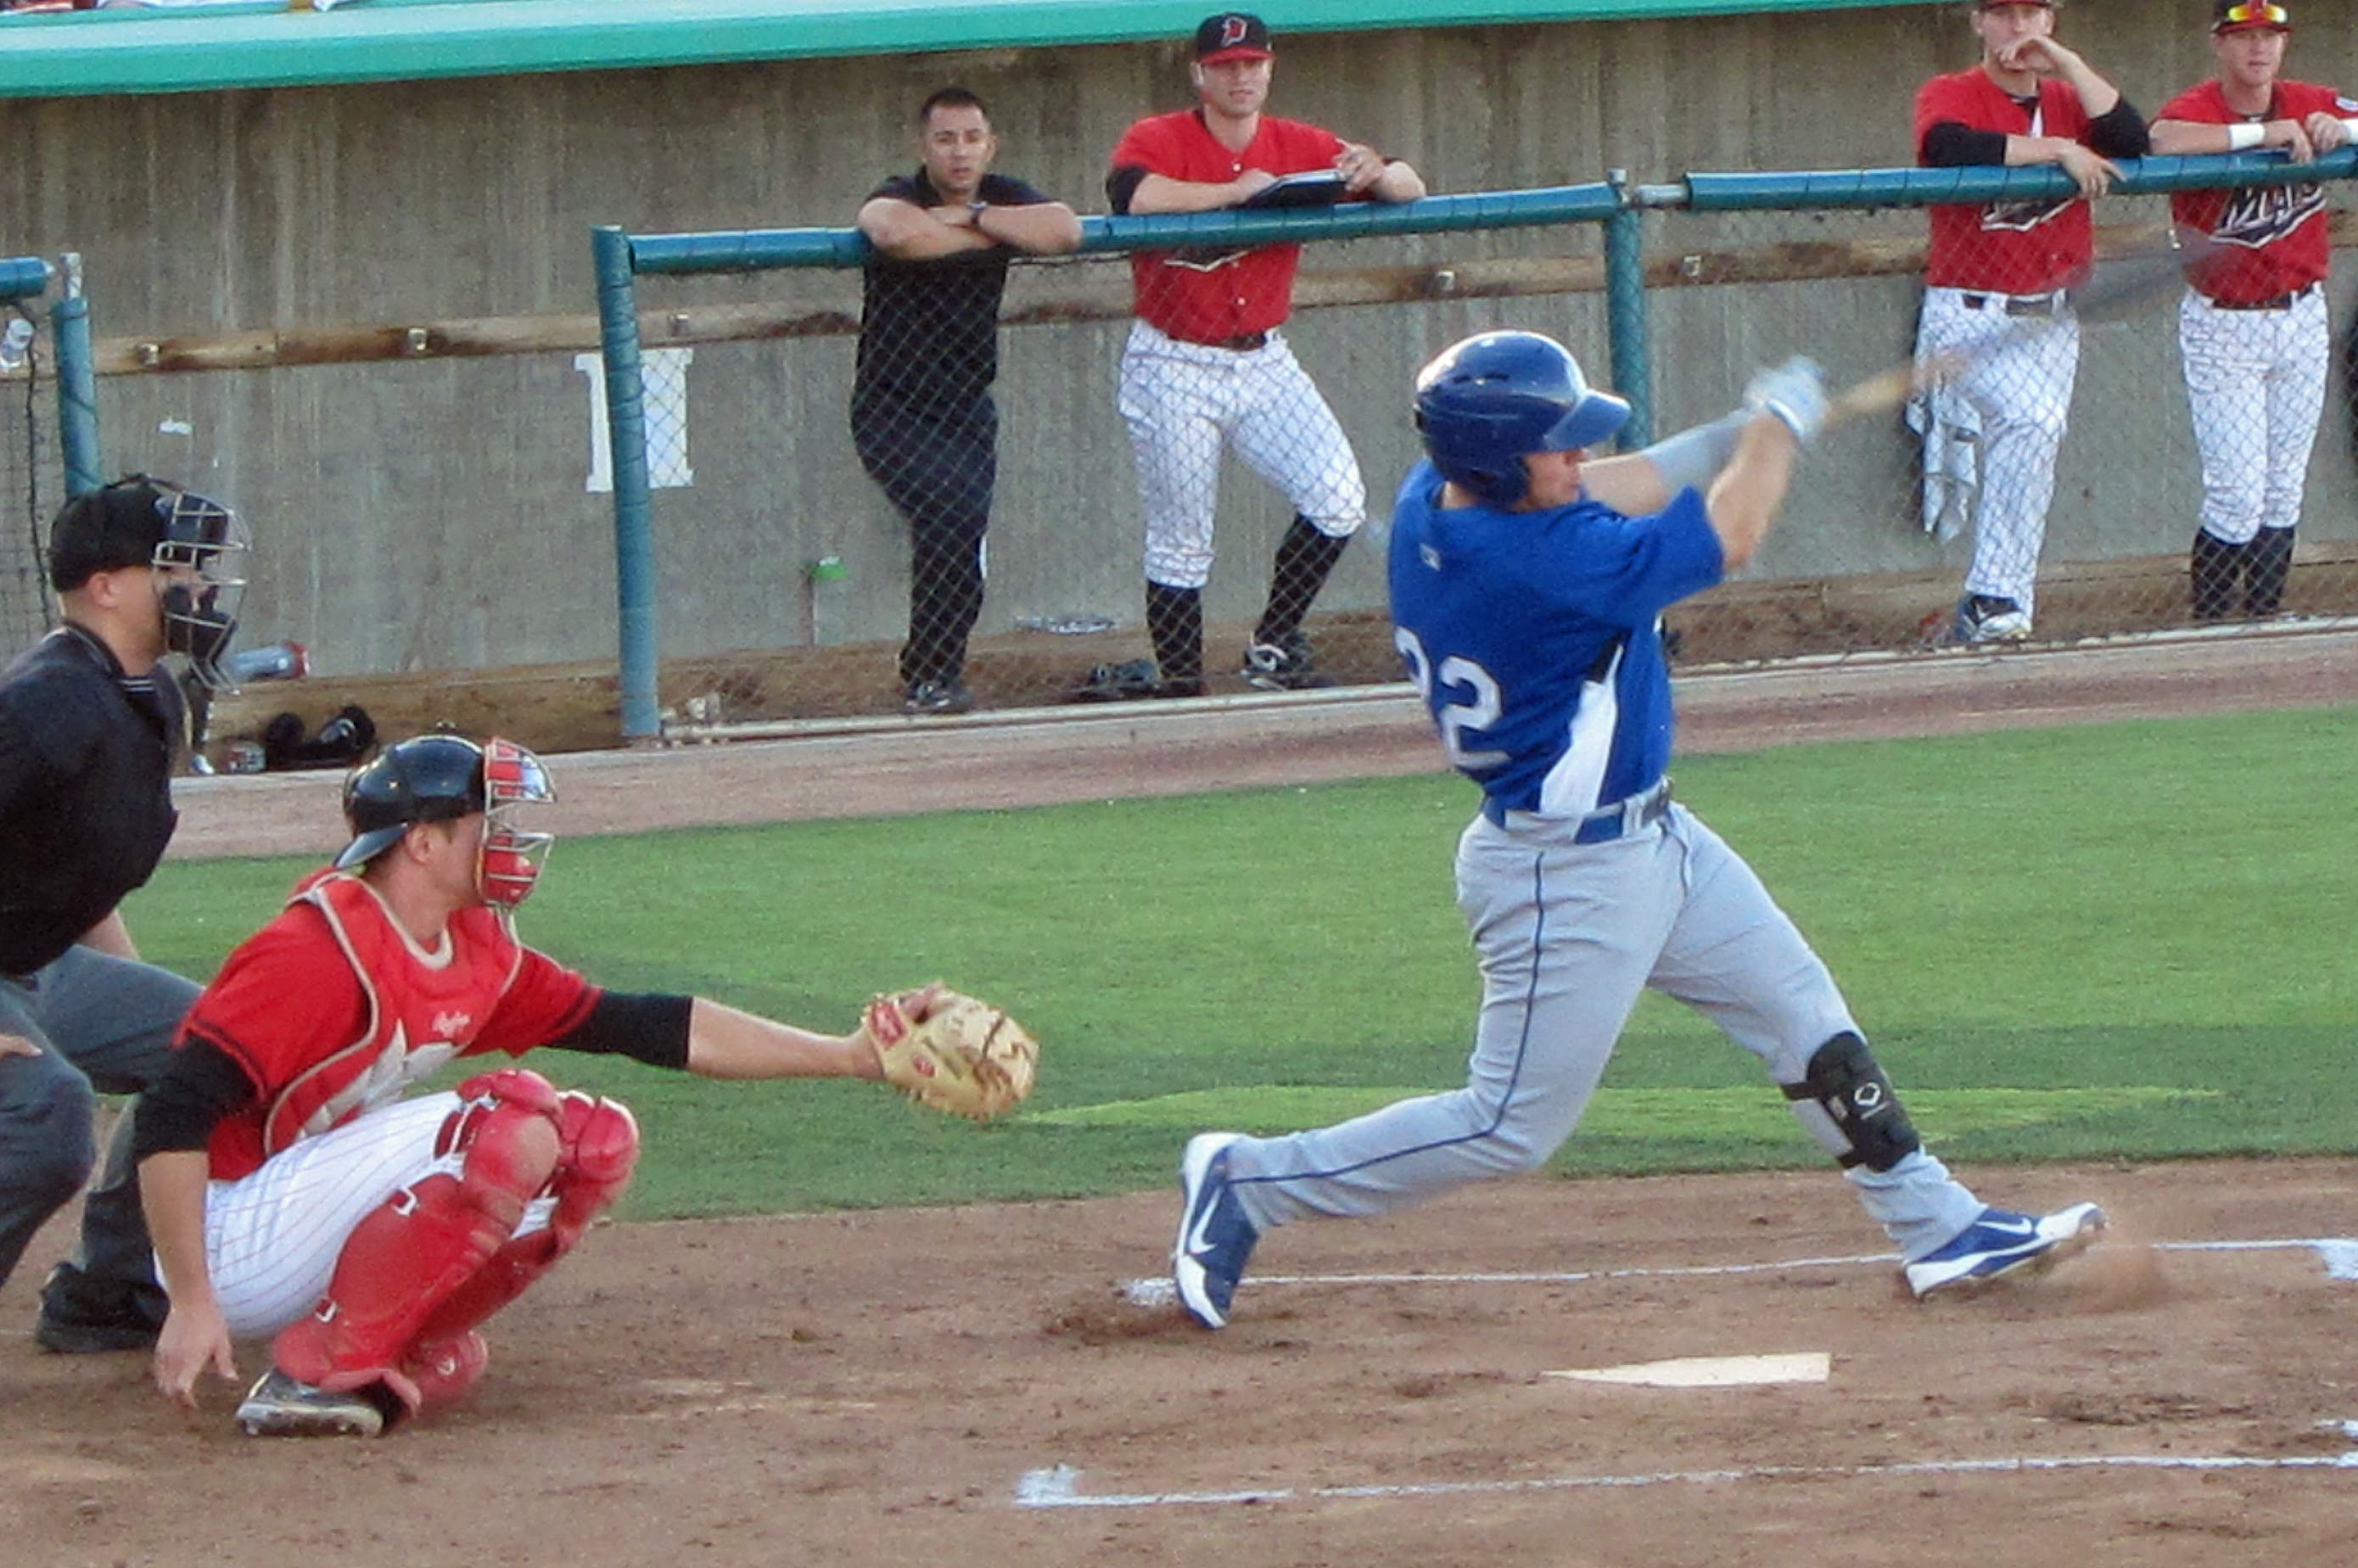 Quakes third baseman C.J. Retherford tees off for a 1st inning home run and went 5 for 5 on an otherwise dismal night. Retherford has been the Quakes hottest hitter over the past month and figures to have a major role in the Quakes quest for the Cal League South second half title.